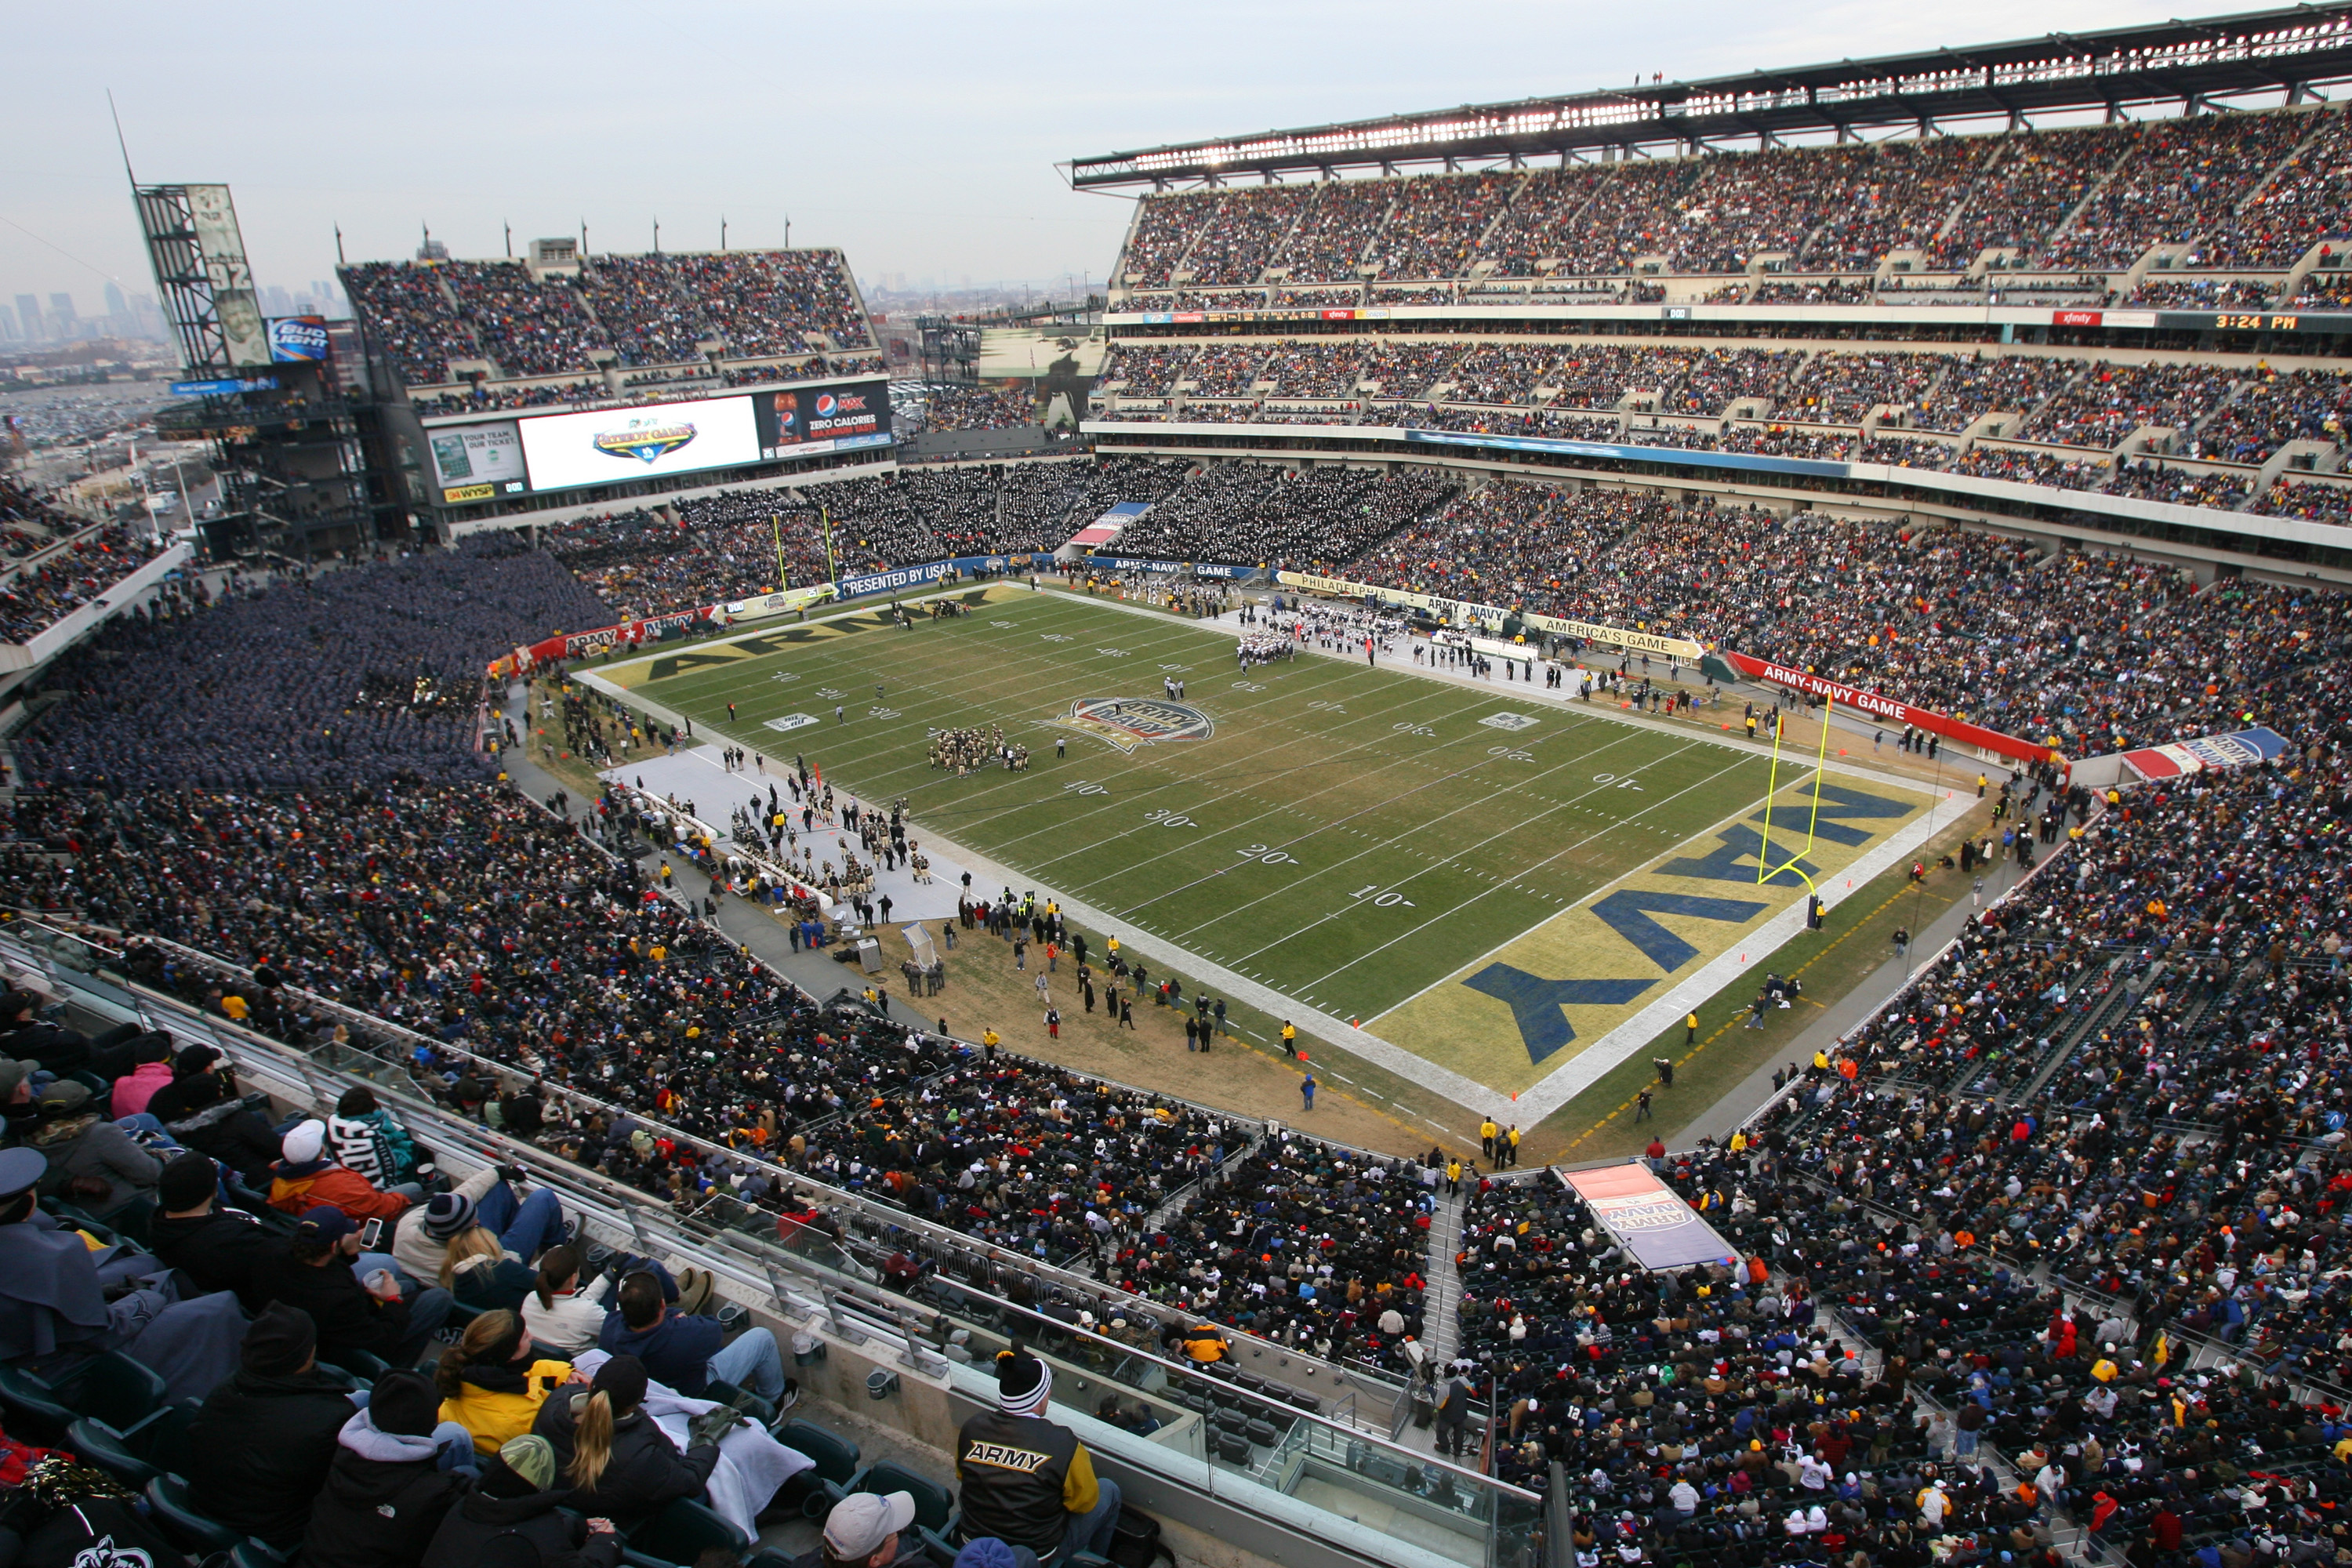 PHILADELPHIA - DECEMBER 11: A view of the field during a game between the Army Black Knights and the Navy Midshipmen on December 11, 2010 at Lincoln Financial Field in Philadelphia, Pennsylvania. The Midshipmen won 31-17. (Photo by Hunter Martin/Getty Ima